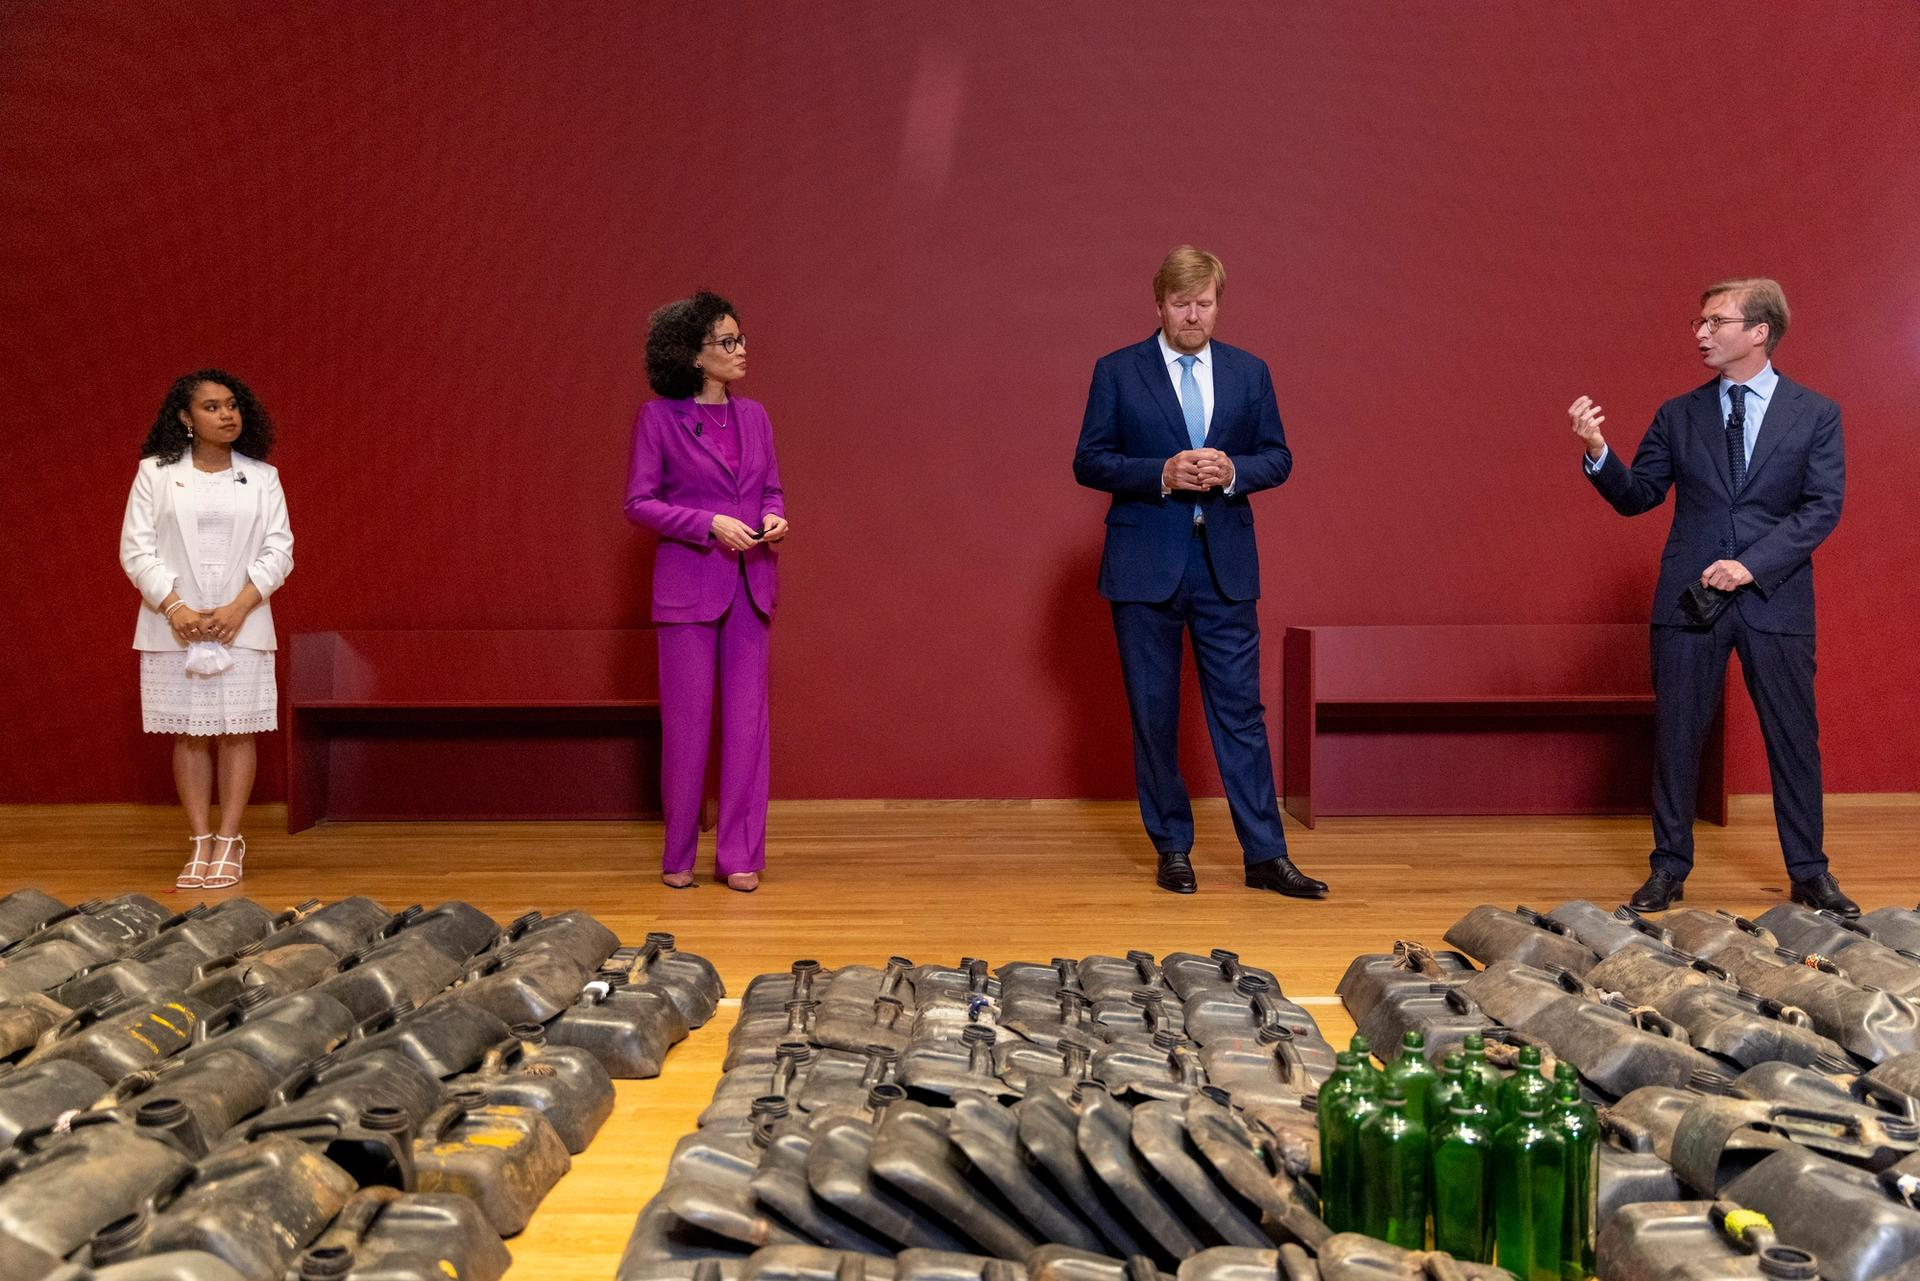 From left to right:  14-year-old singer Yosina Roemajauw, who is the narrator of the family audio tour of the Slavery exhibition; the Rijksmuseum's head of history Valika Smeulders; King Willem-Alexander of the Netherlands; and the Rijksmuseum's director Taco Dibbits Photo: © Romuald Hazoumè